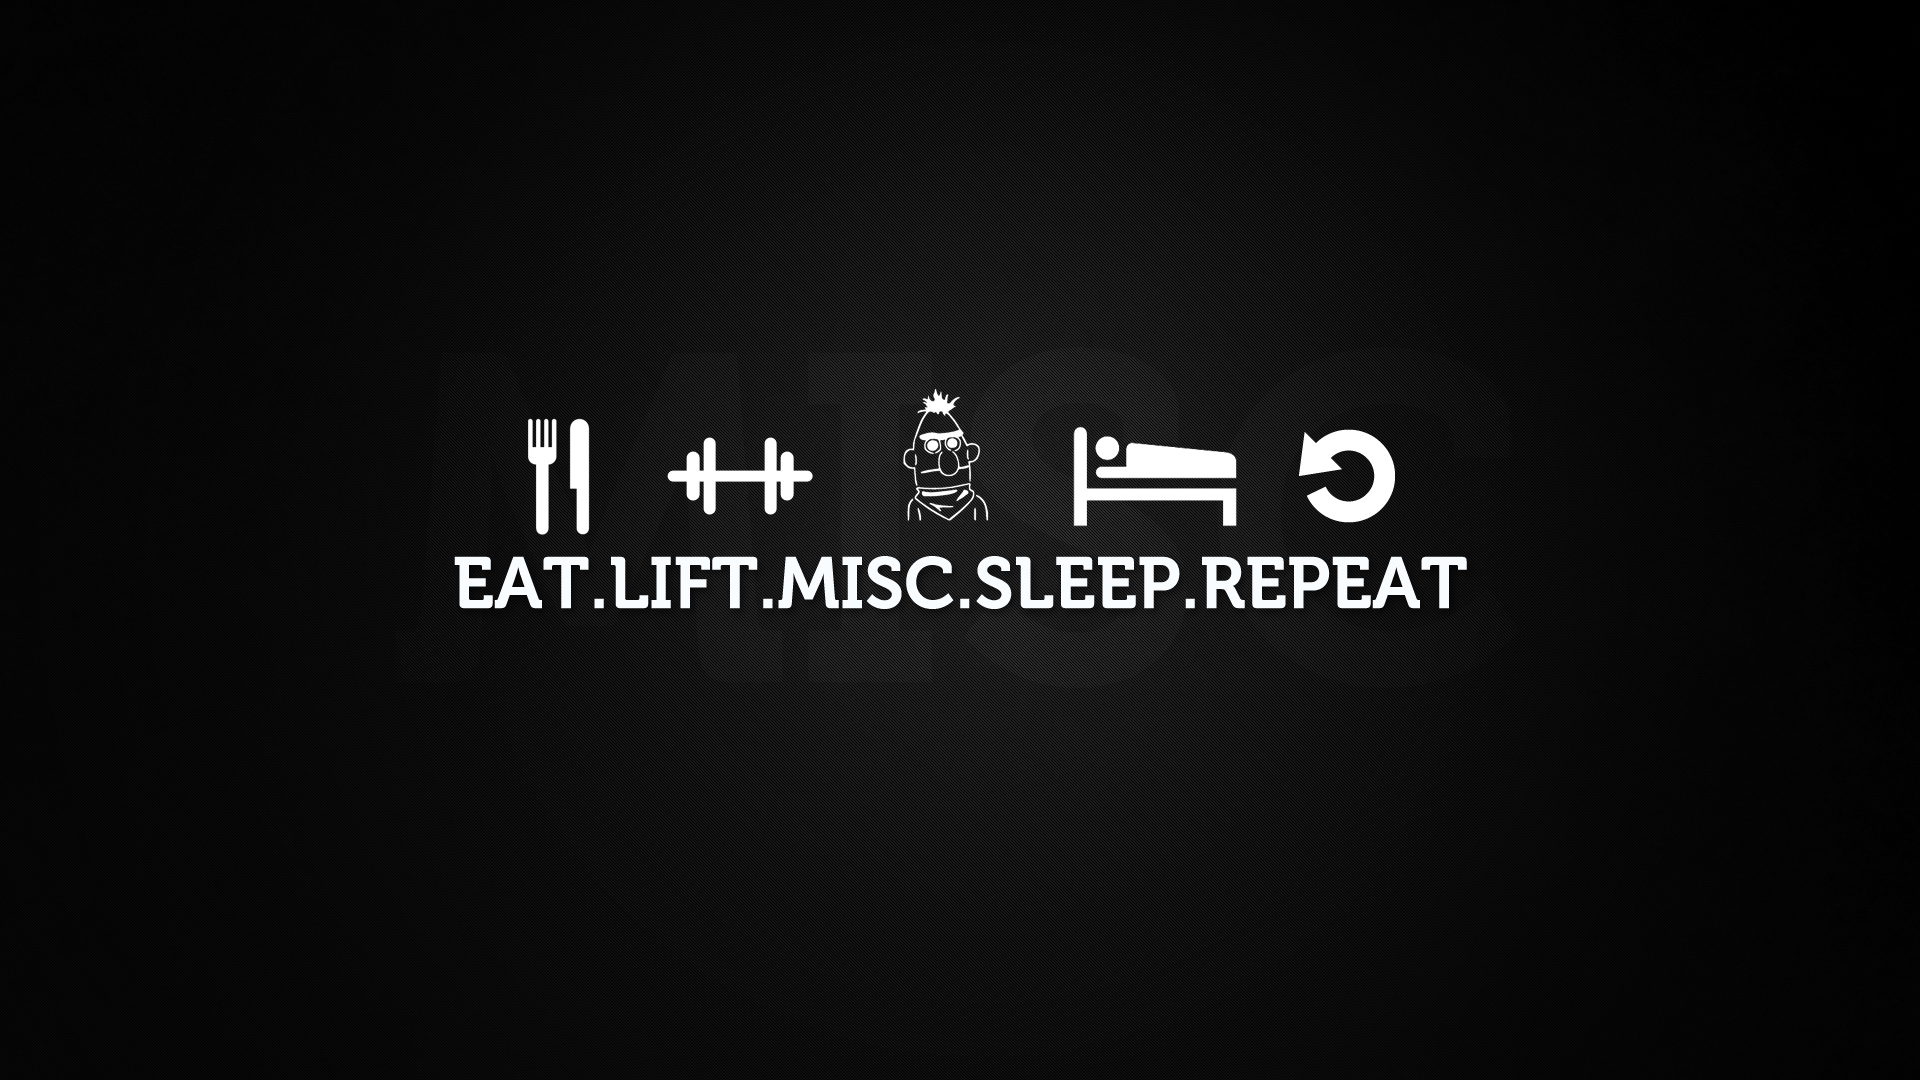 Gym Motivation Wallpaper